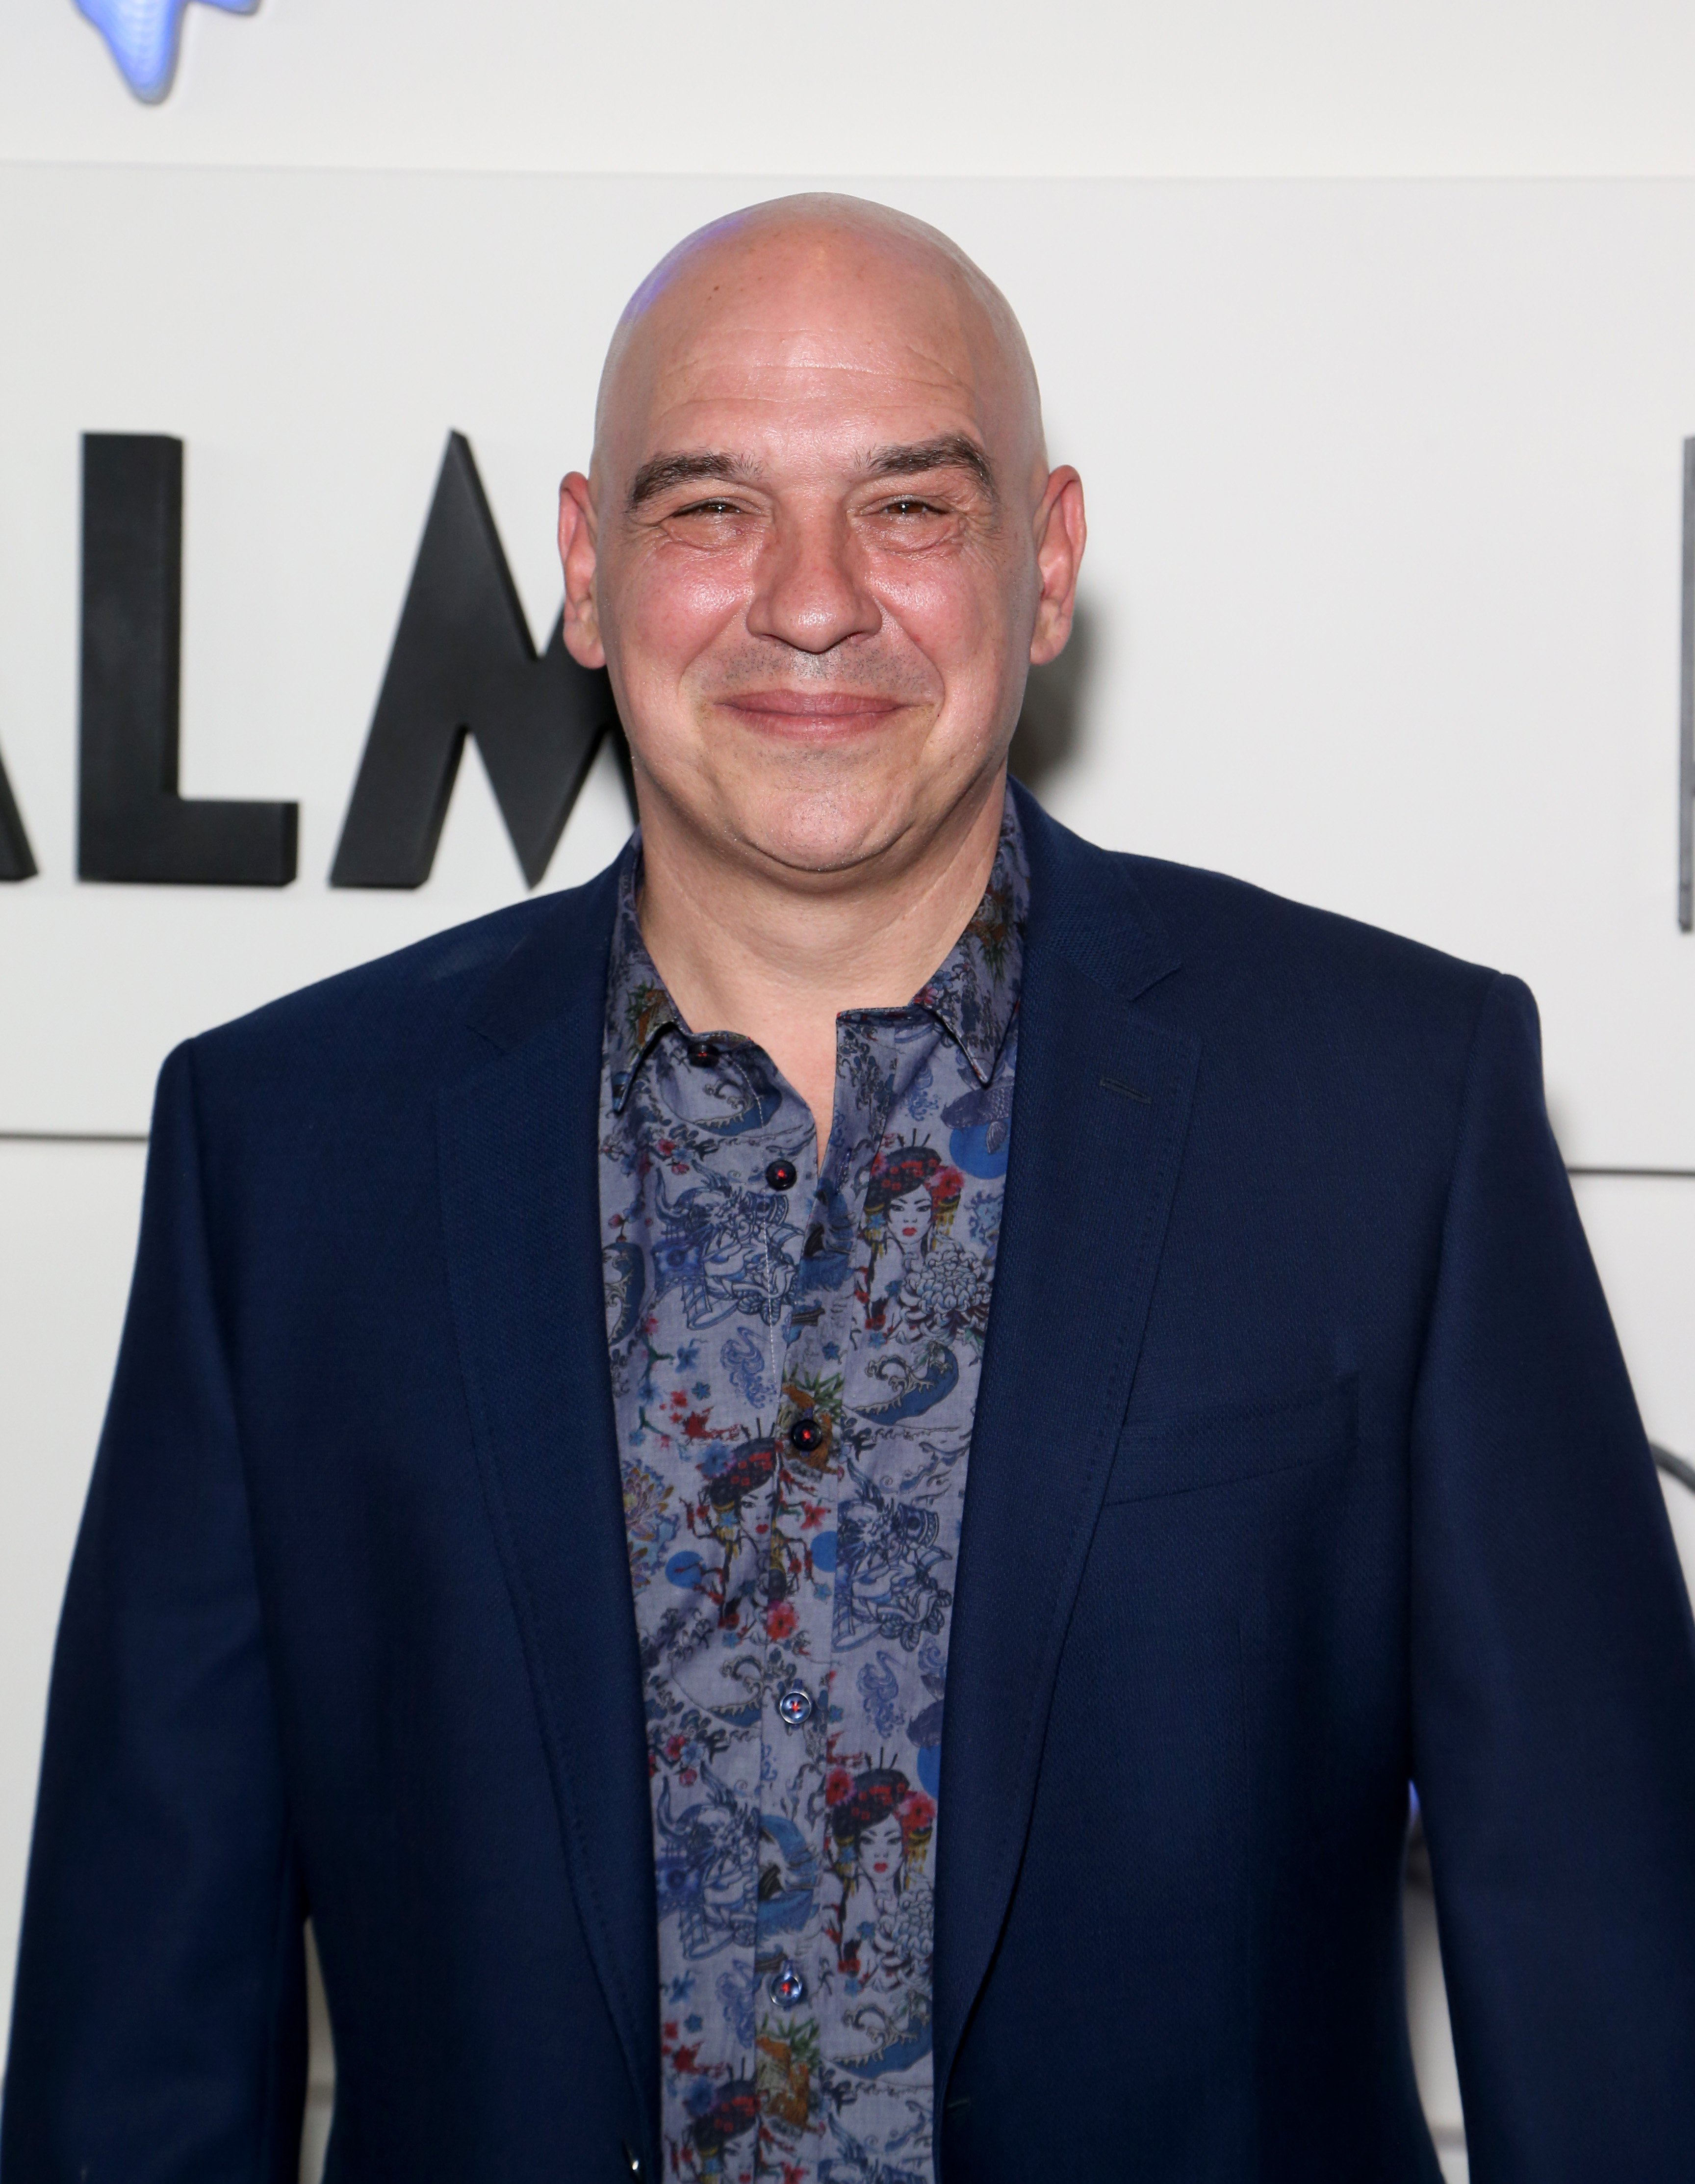 Chef Michael Symon attends the grand opening of KAOS Dayclub & Nightclub | Source: Getty Images